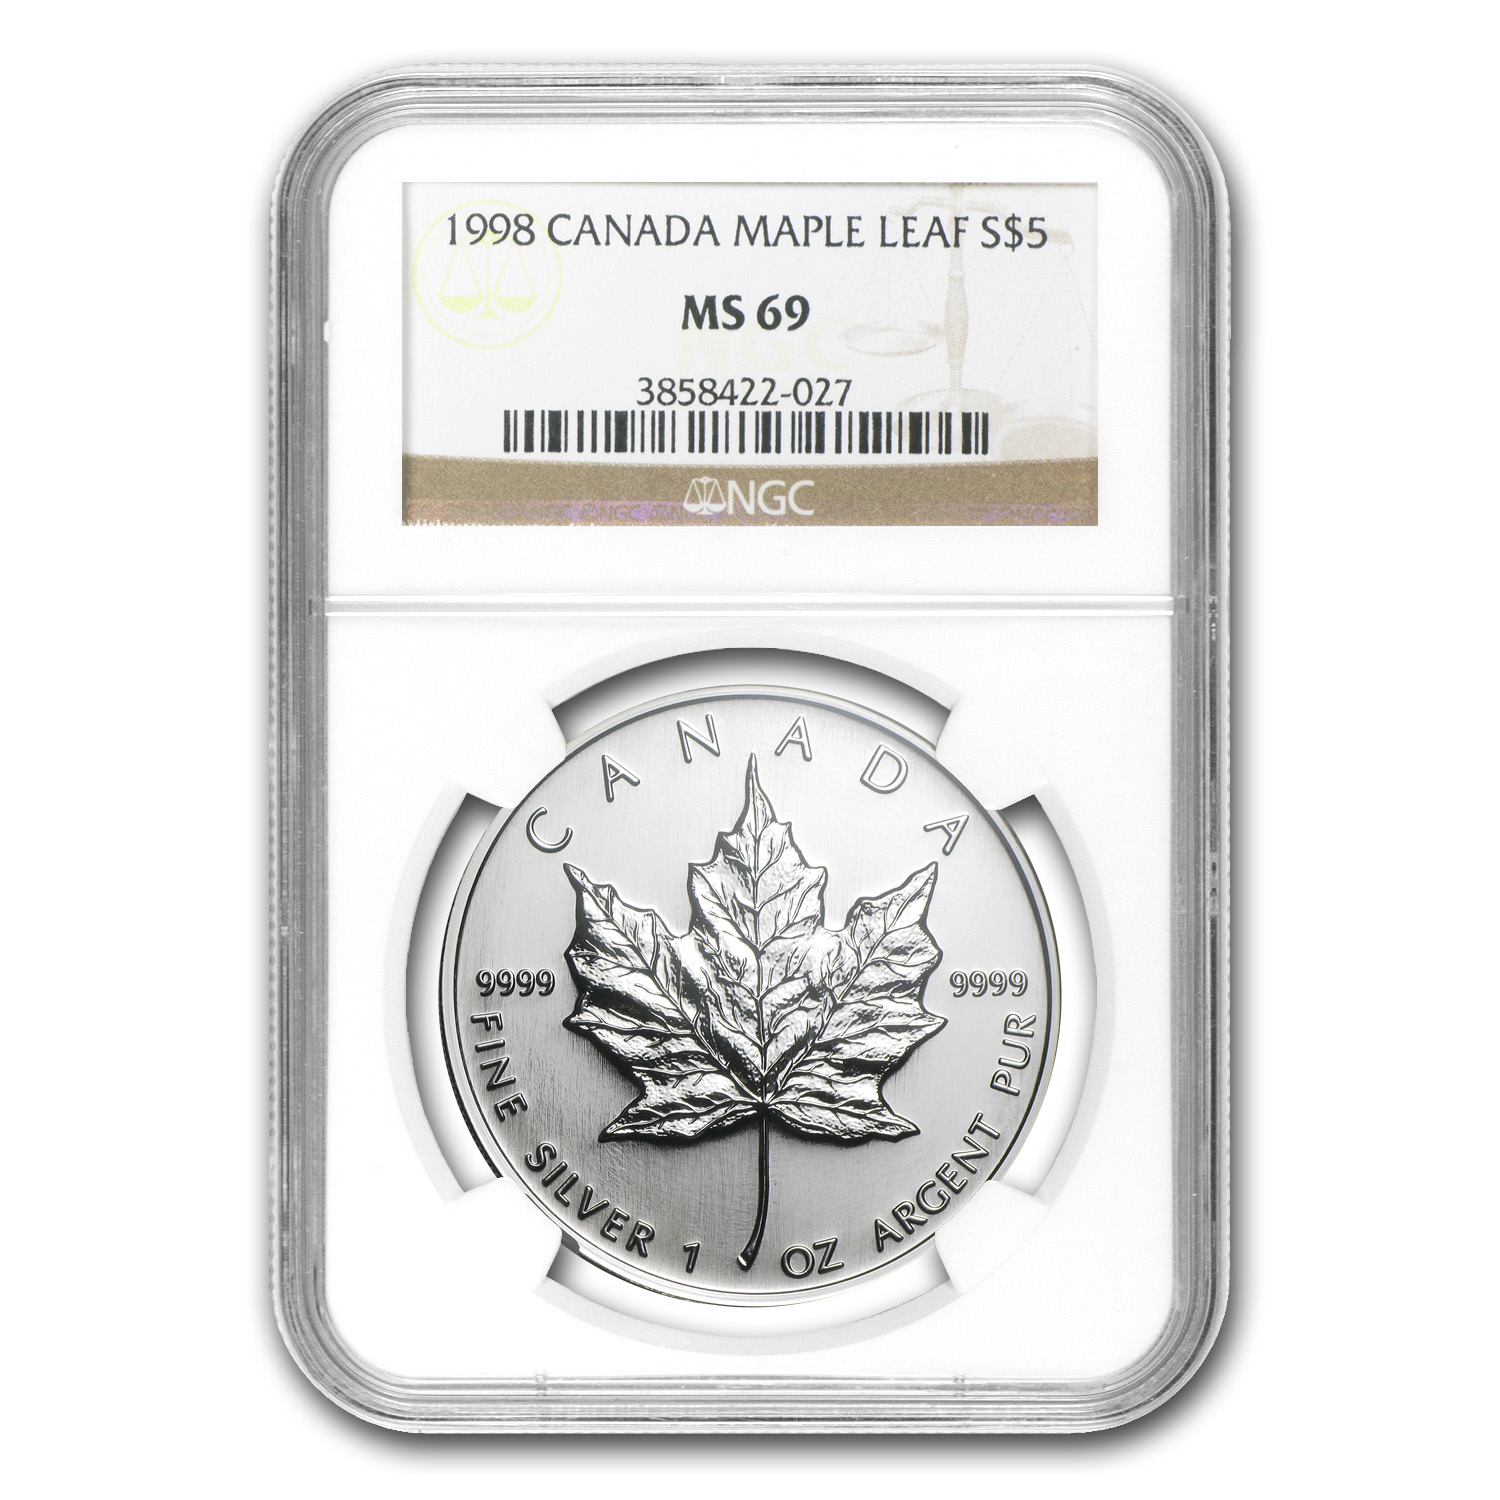 1998 1 oz Silver Canadian Maple Leaf MS-69 NGC